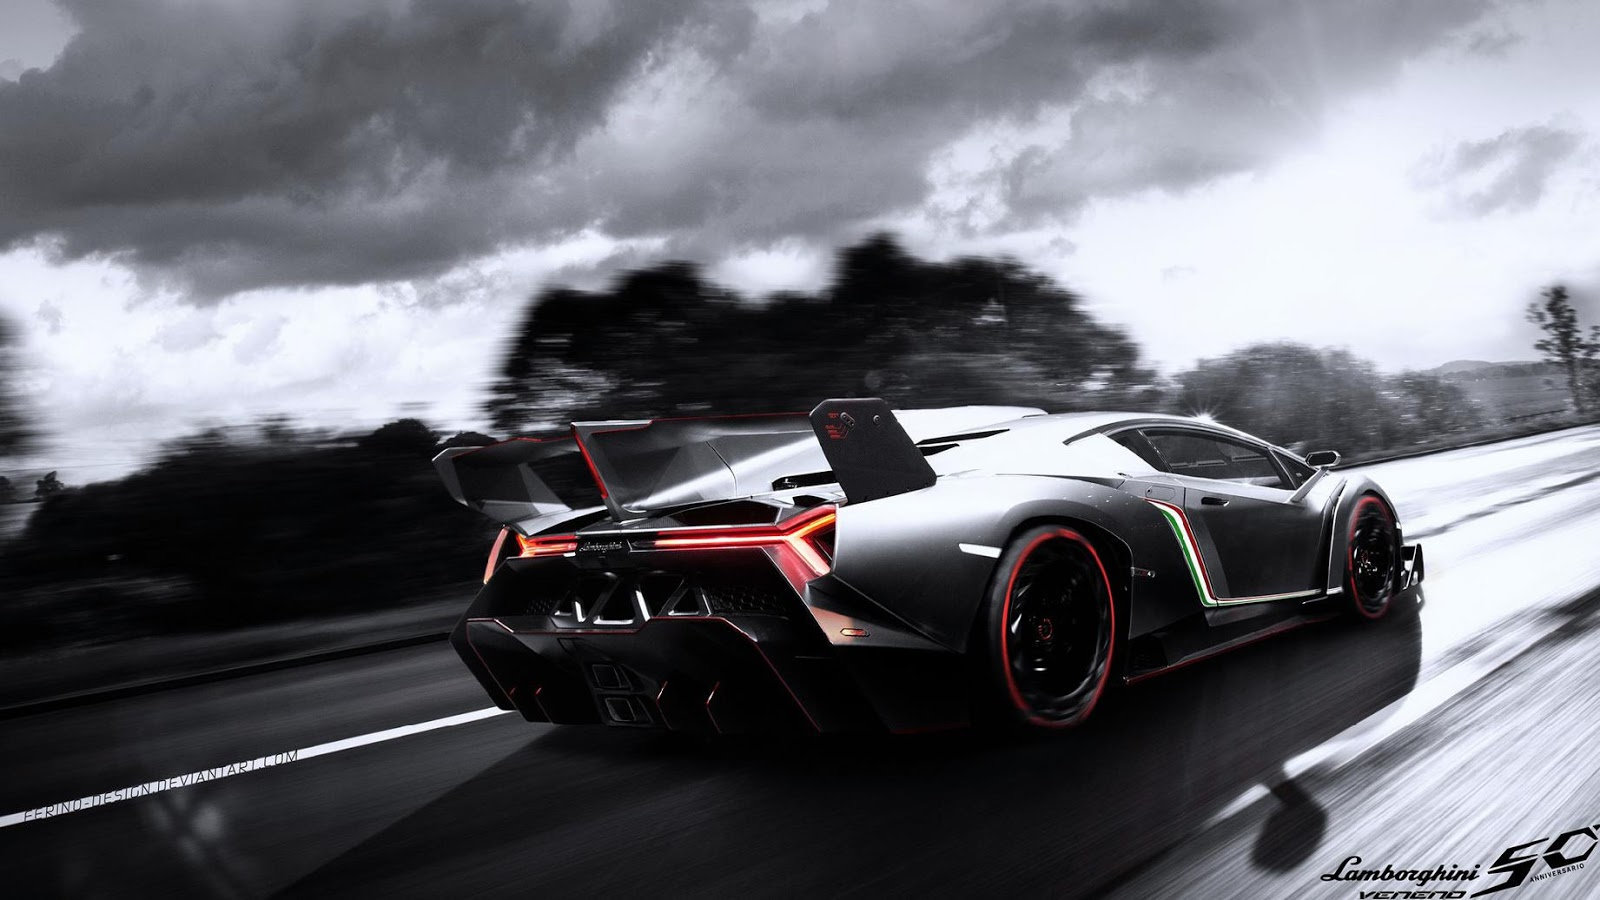 Kumpulan Wallpaper Pc Lamborghini Stok Wallpaper